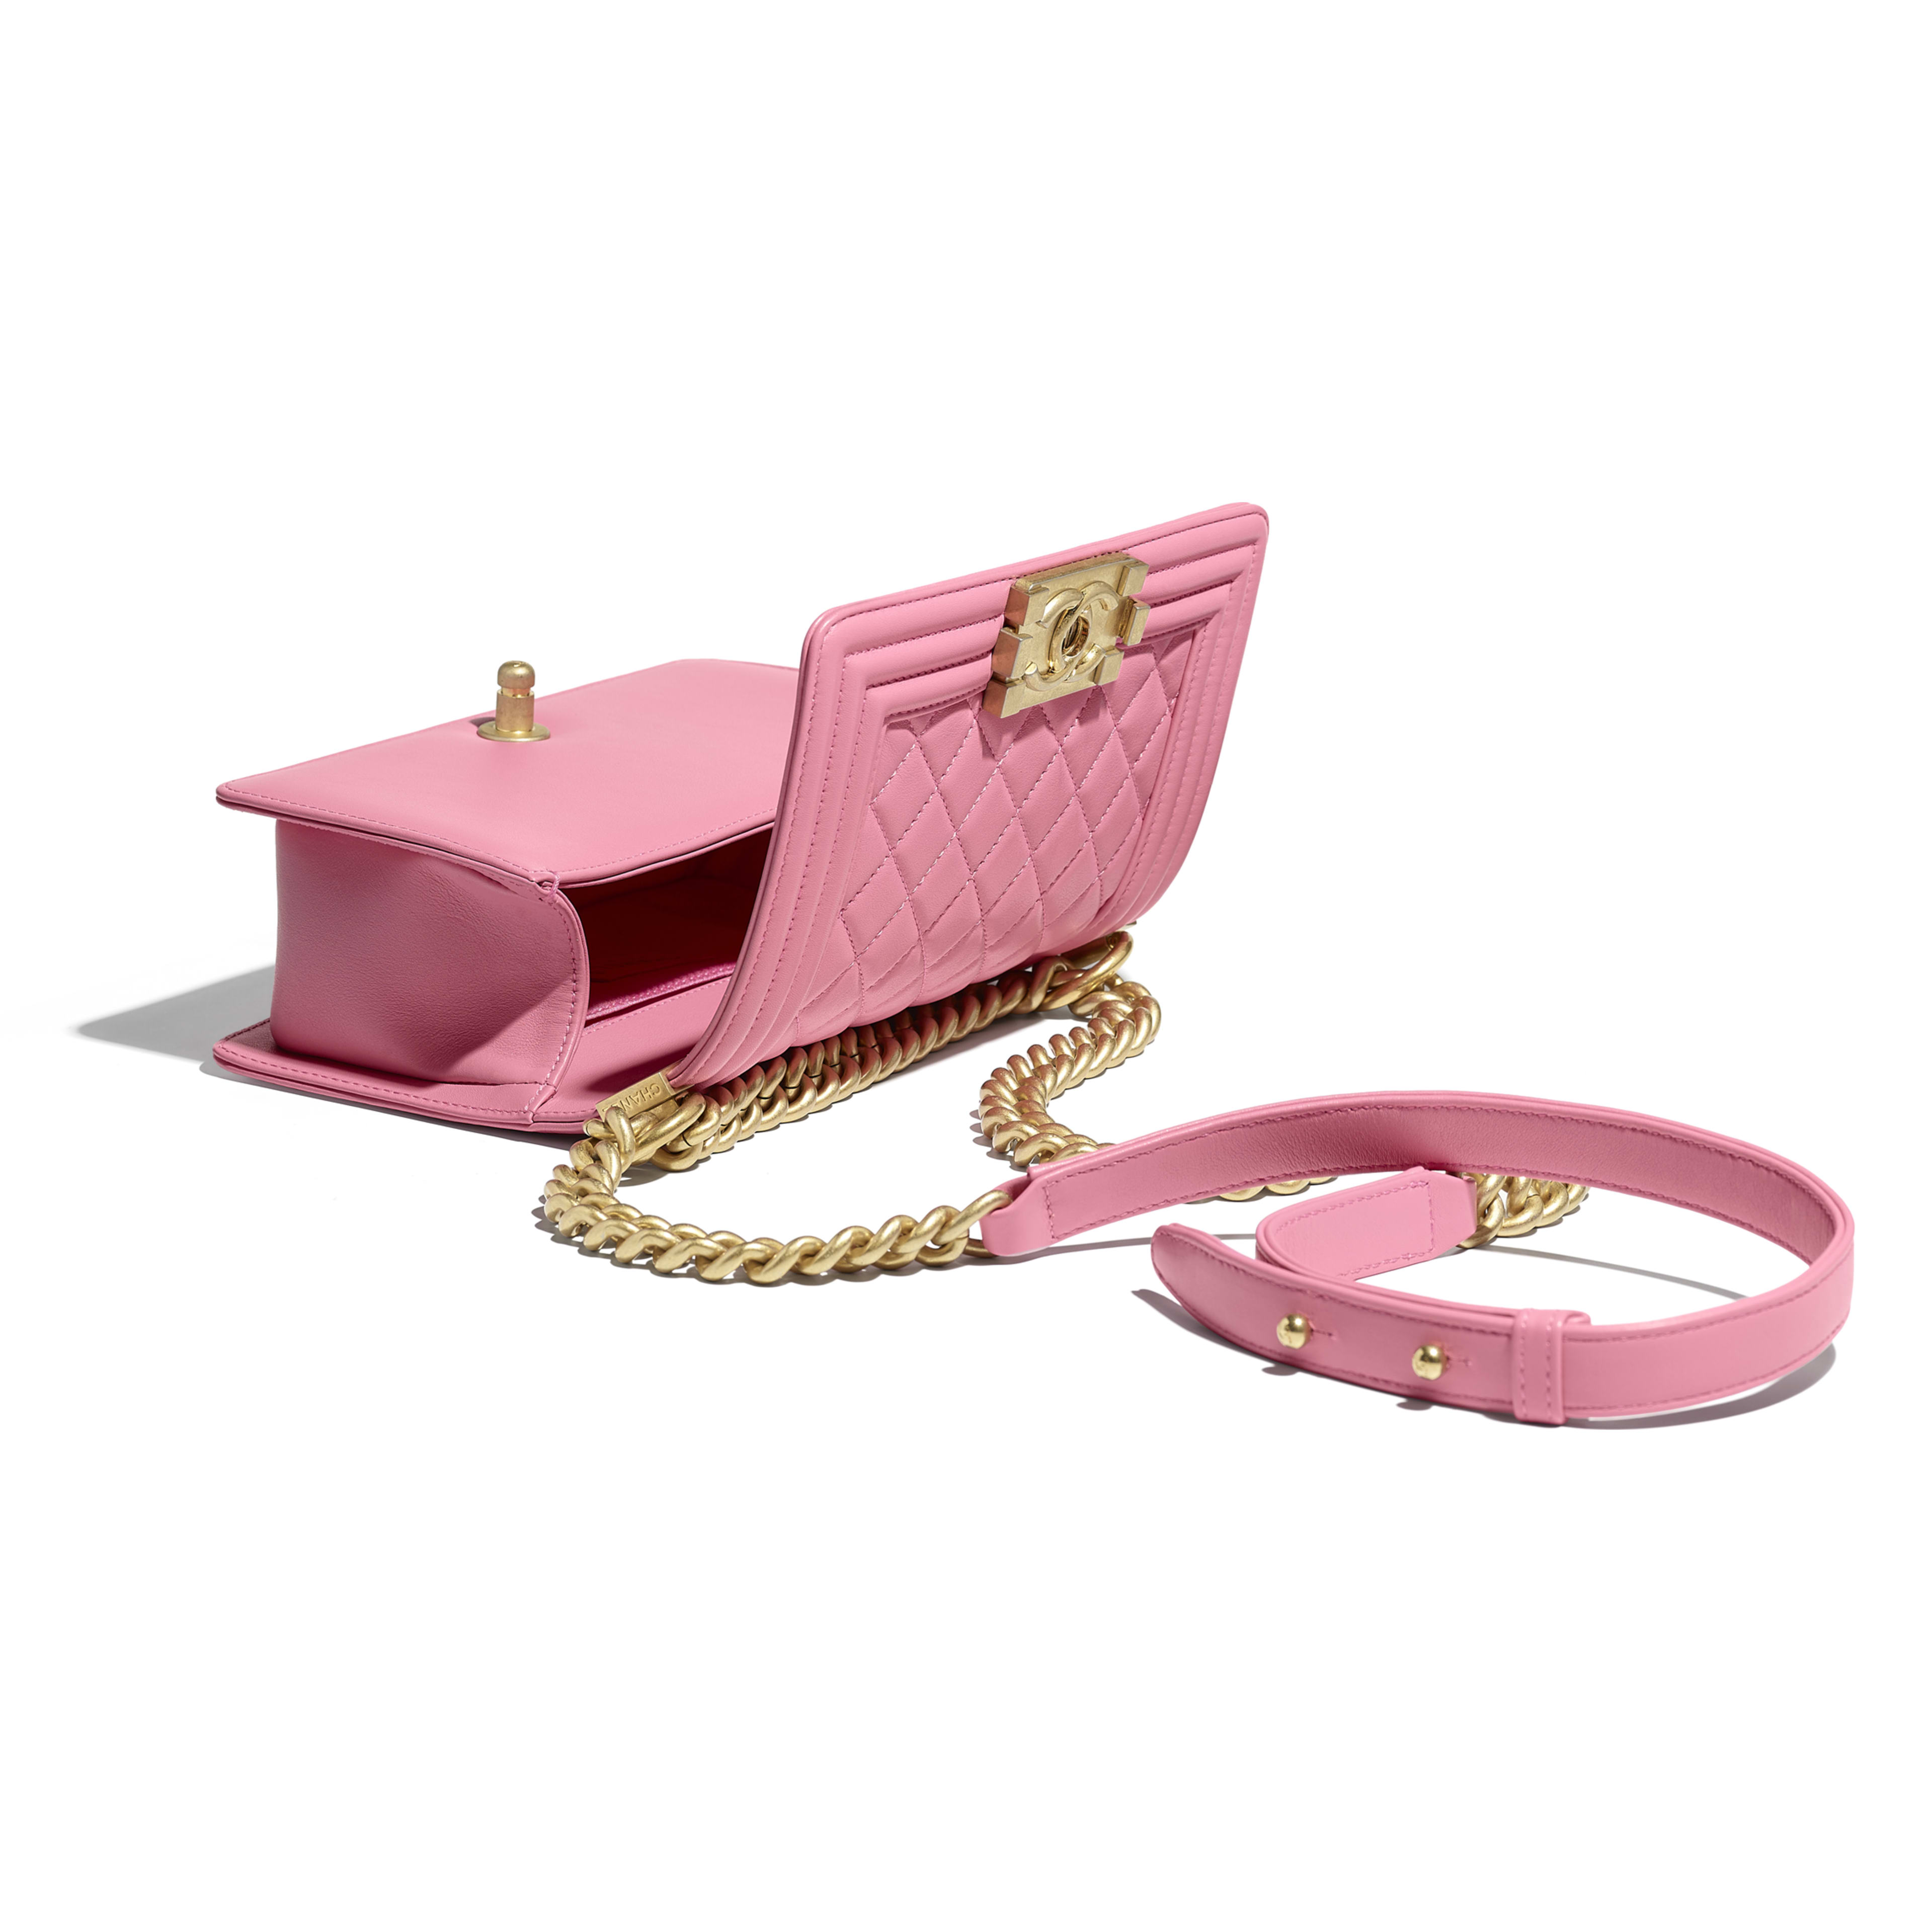 Small BOY CHANEL Handbag - Pink - Calfskin & Gold-Tone Metal - Other view - see full sized version